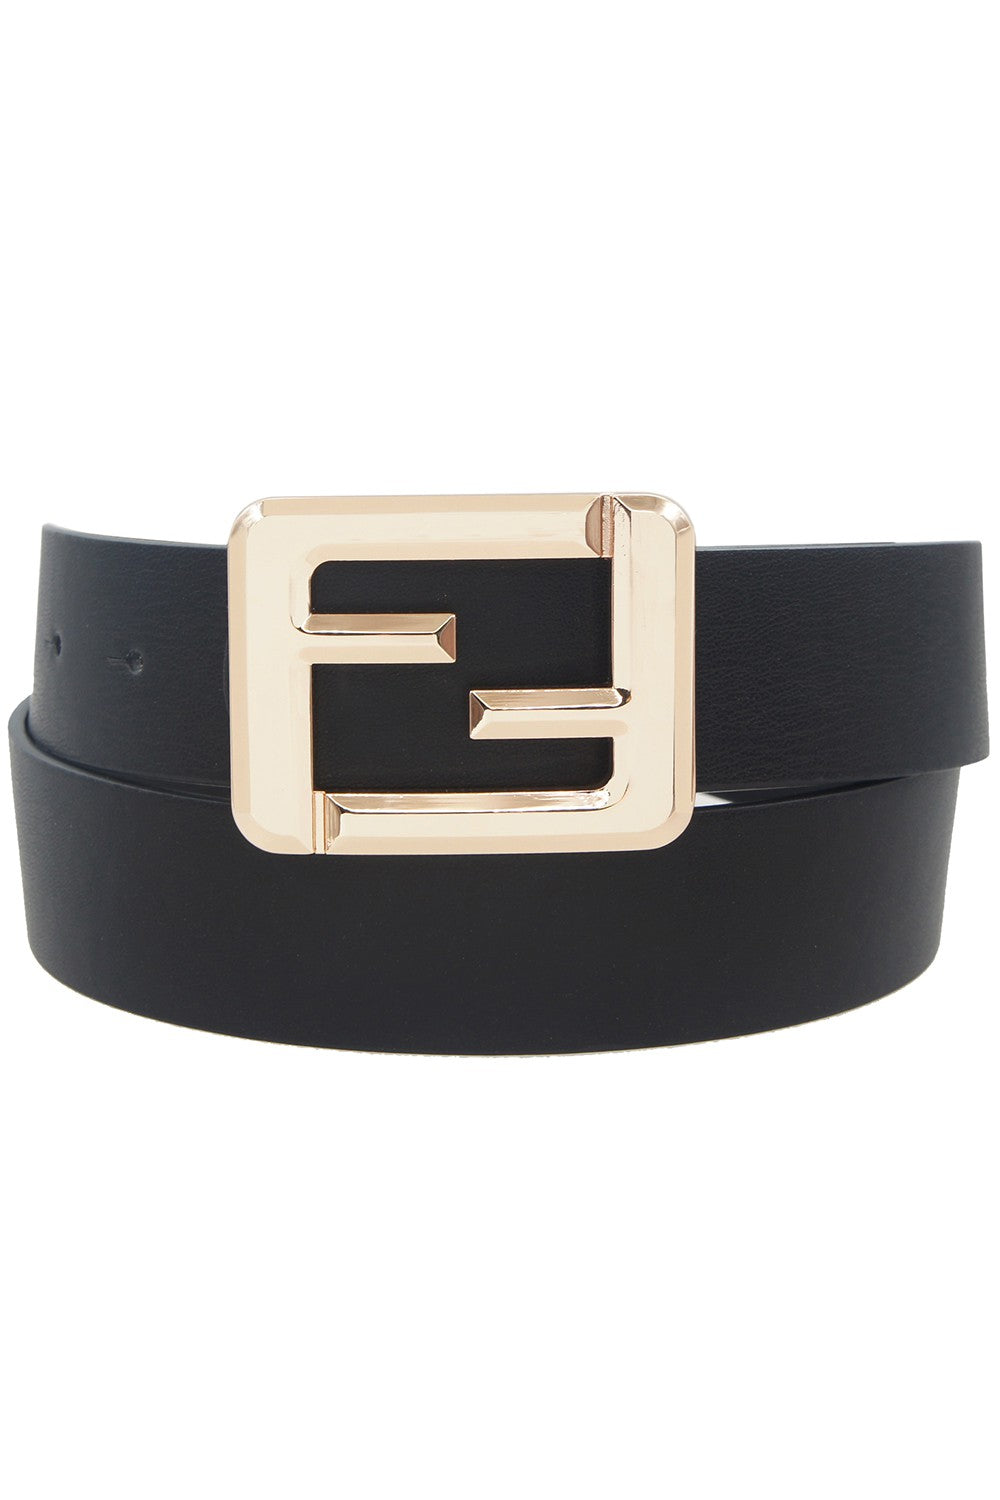 women's black fashion belt